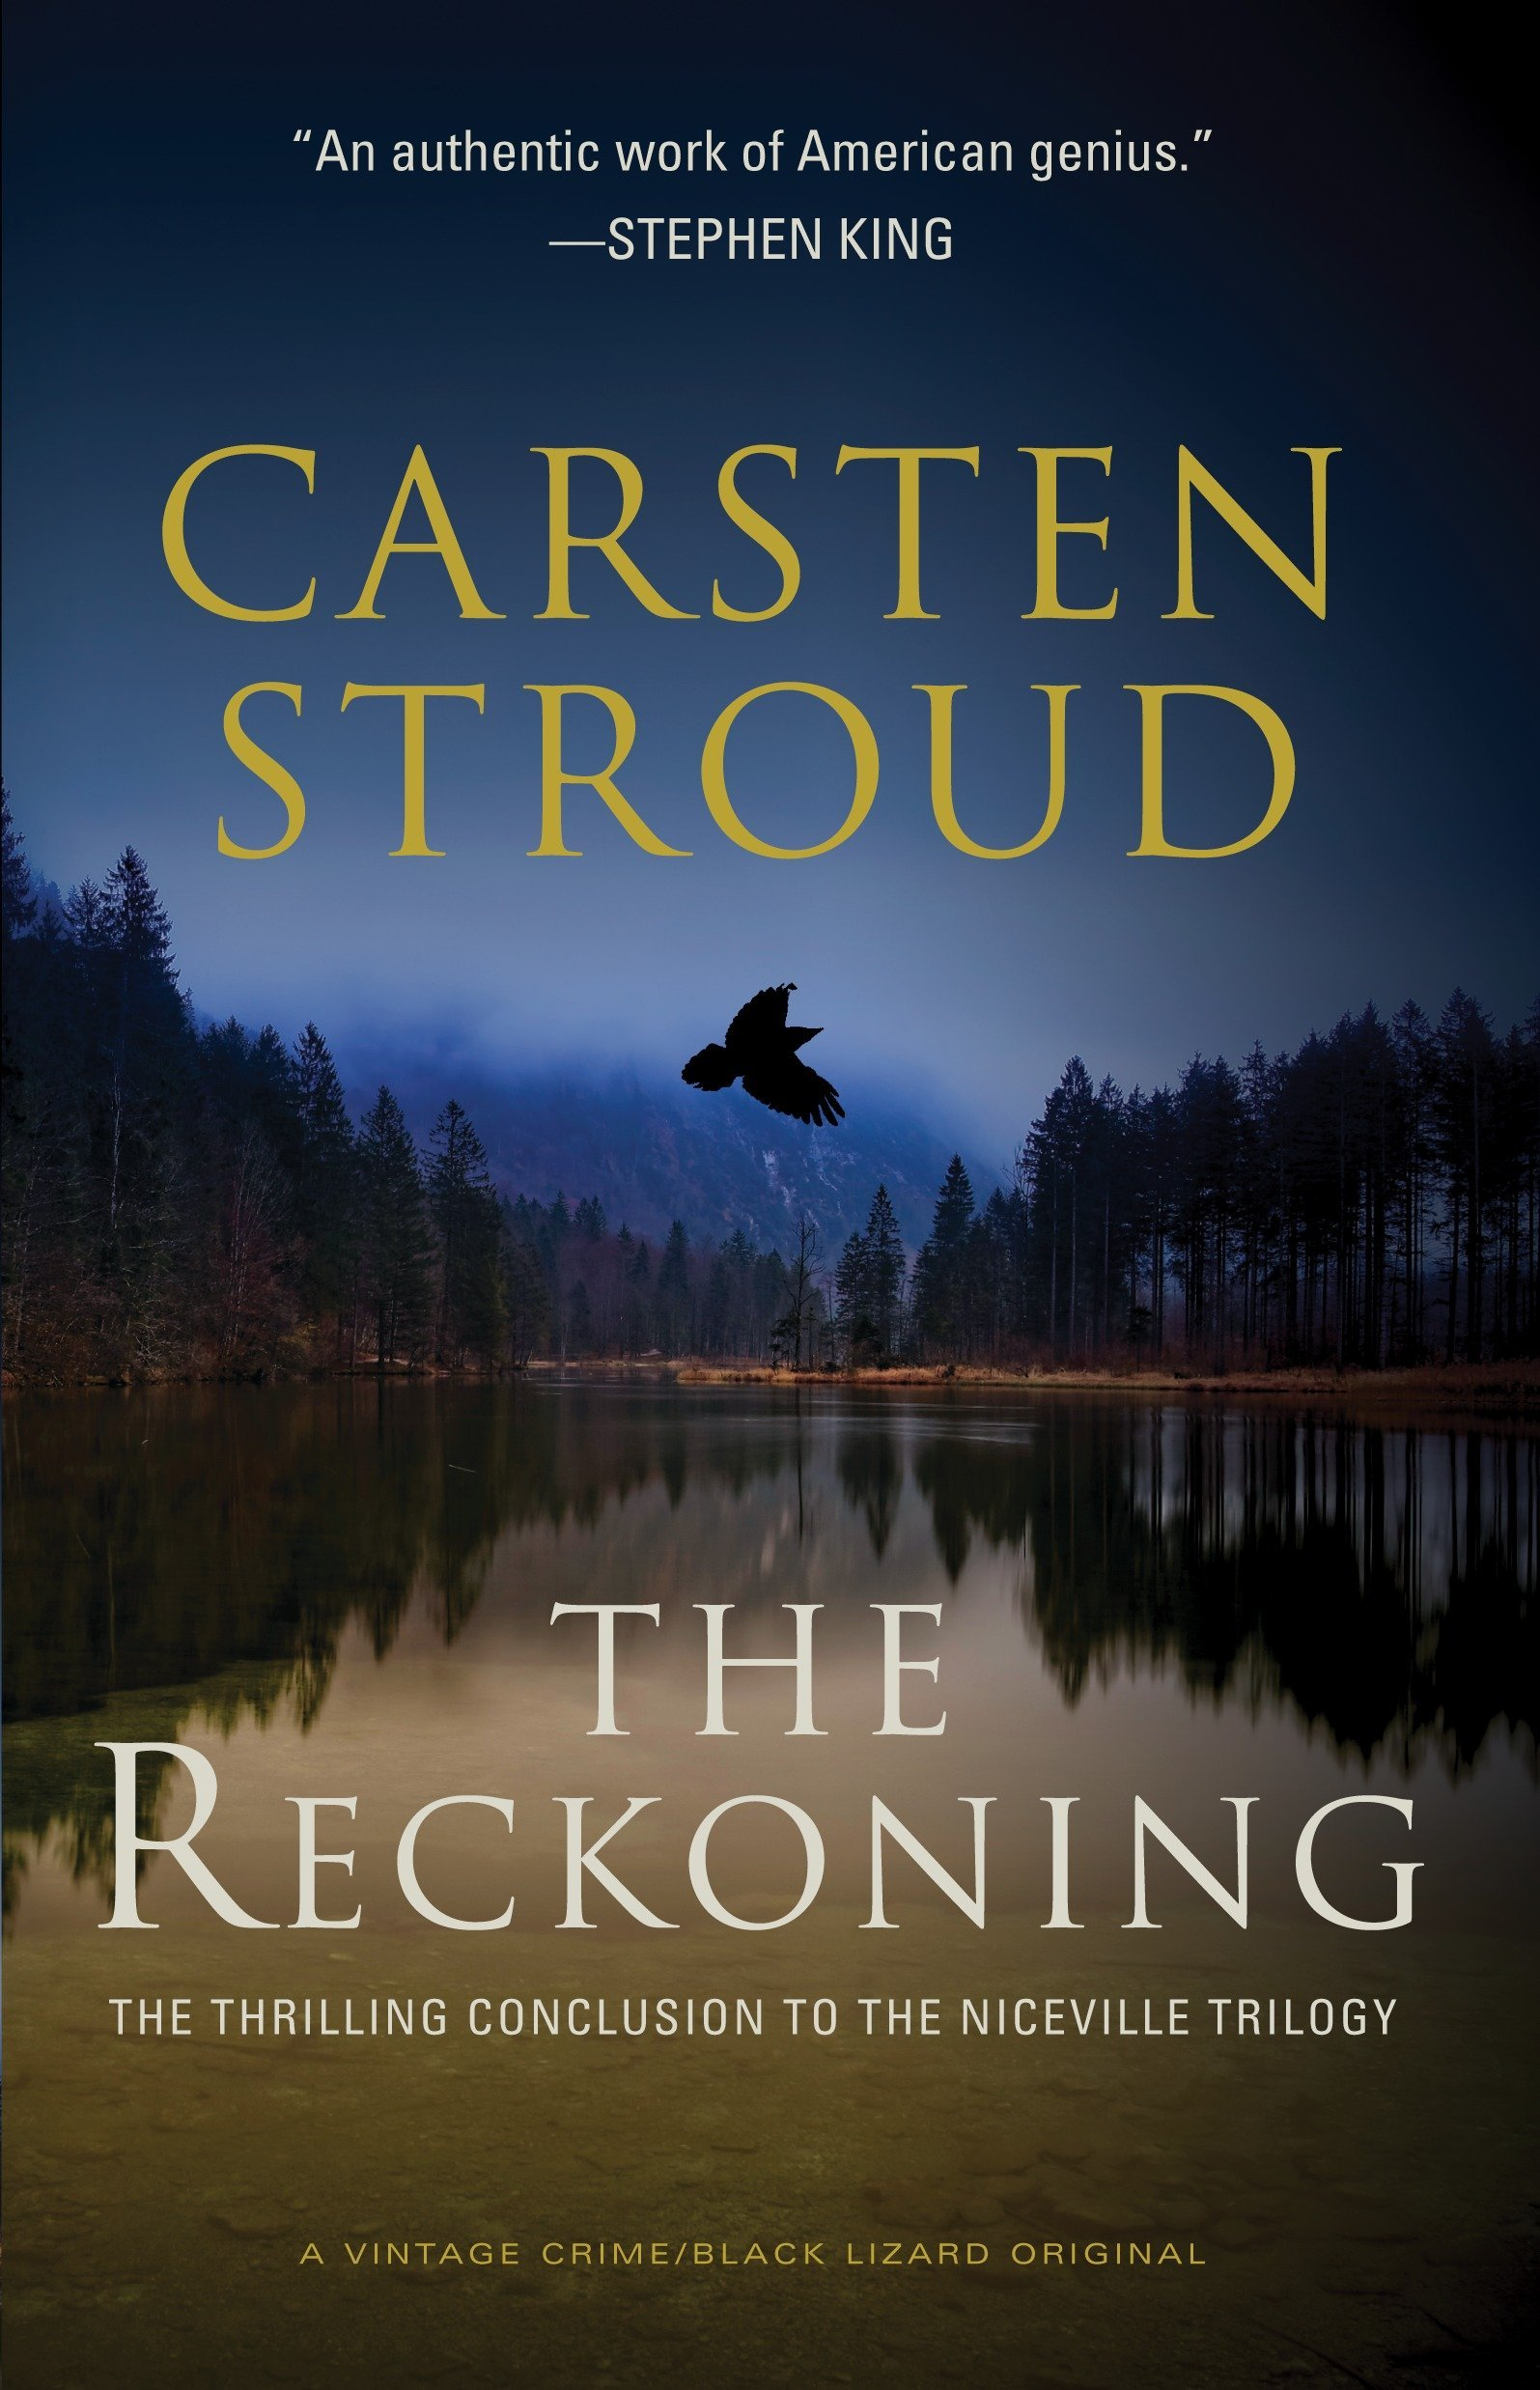 The Reckoning: Book Three of the Niceville Trilogy The Niceville Trilogy: Vintage Crime/Black Lizard Original: Amazon.es: Carsten Stroud: Libros en idiomas ...